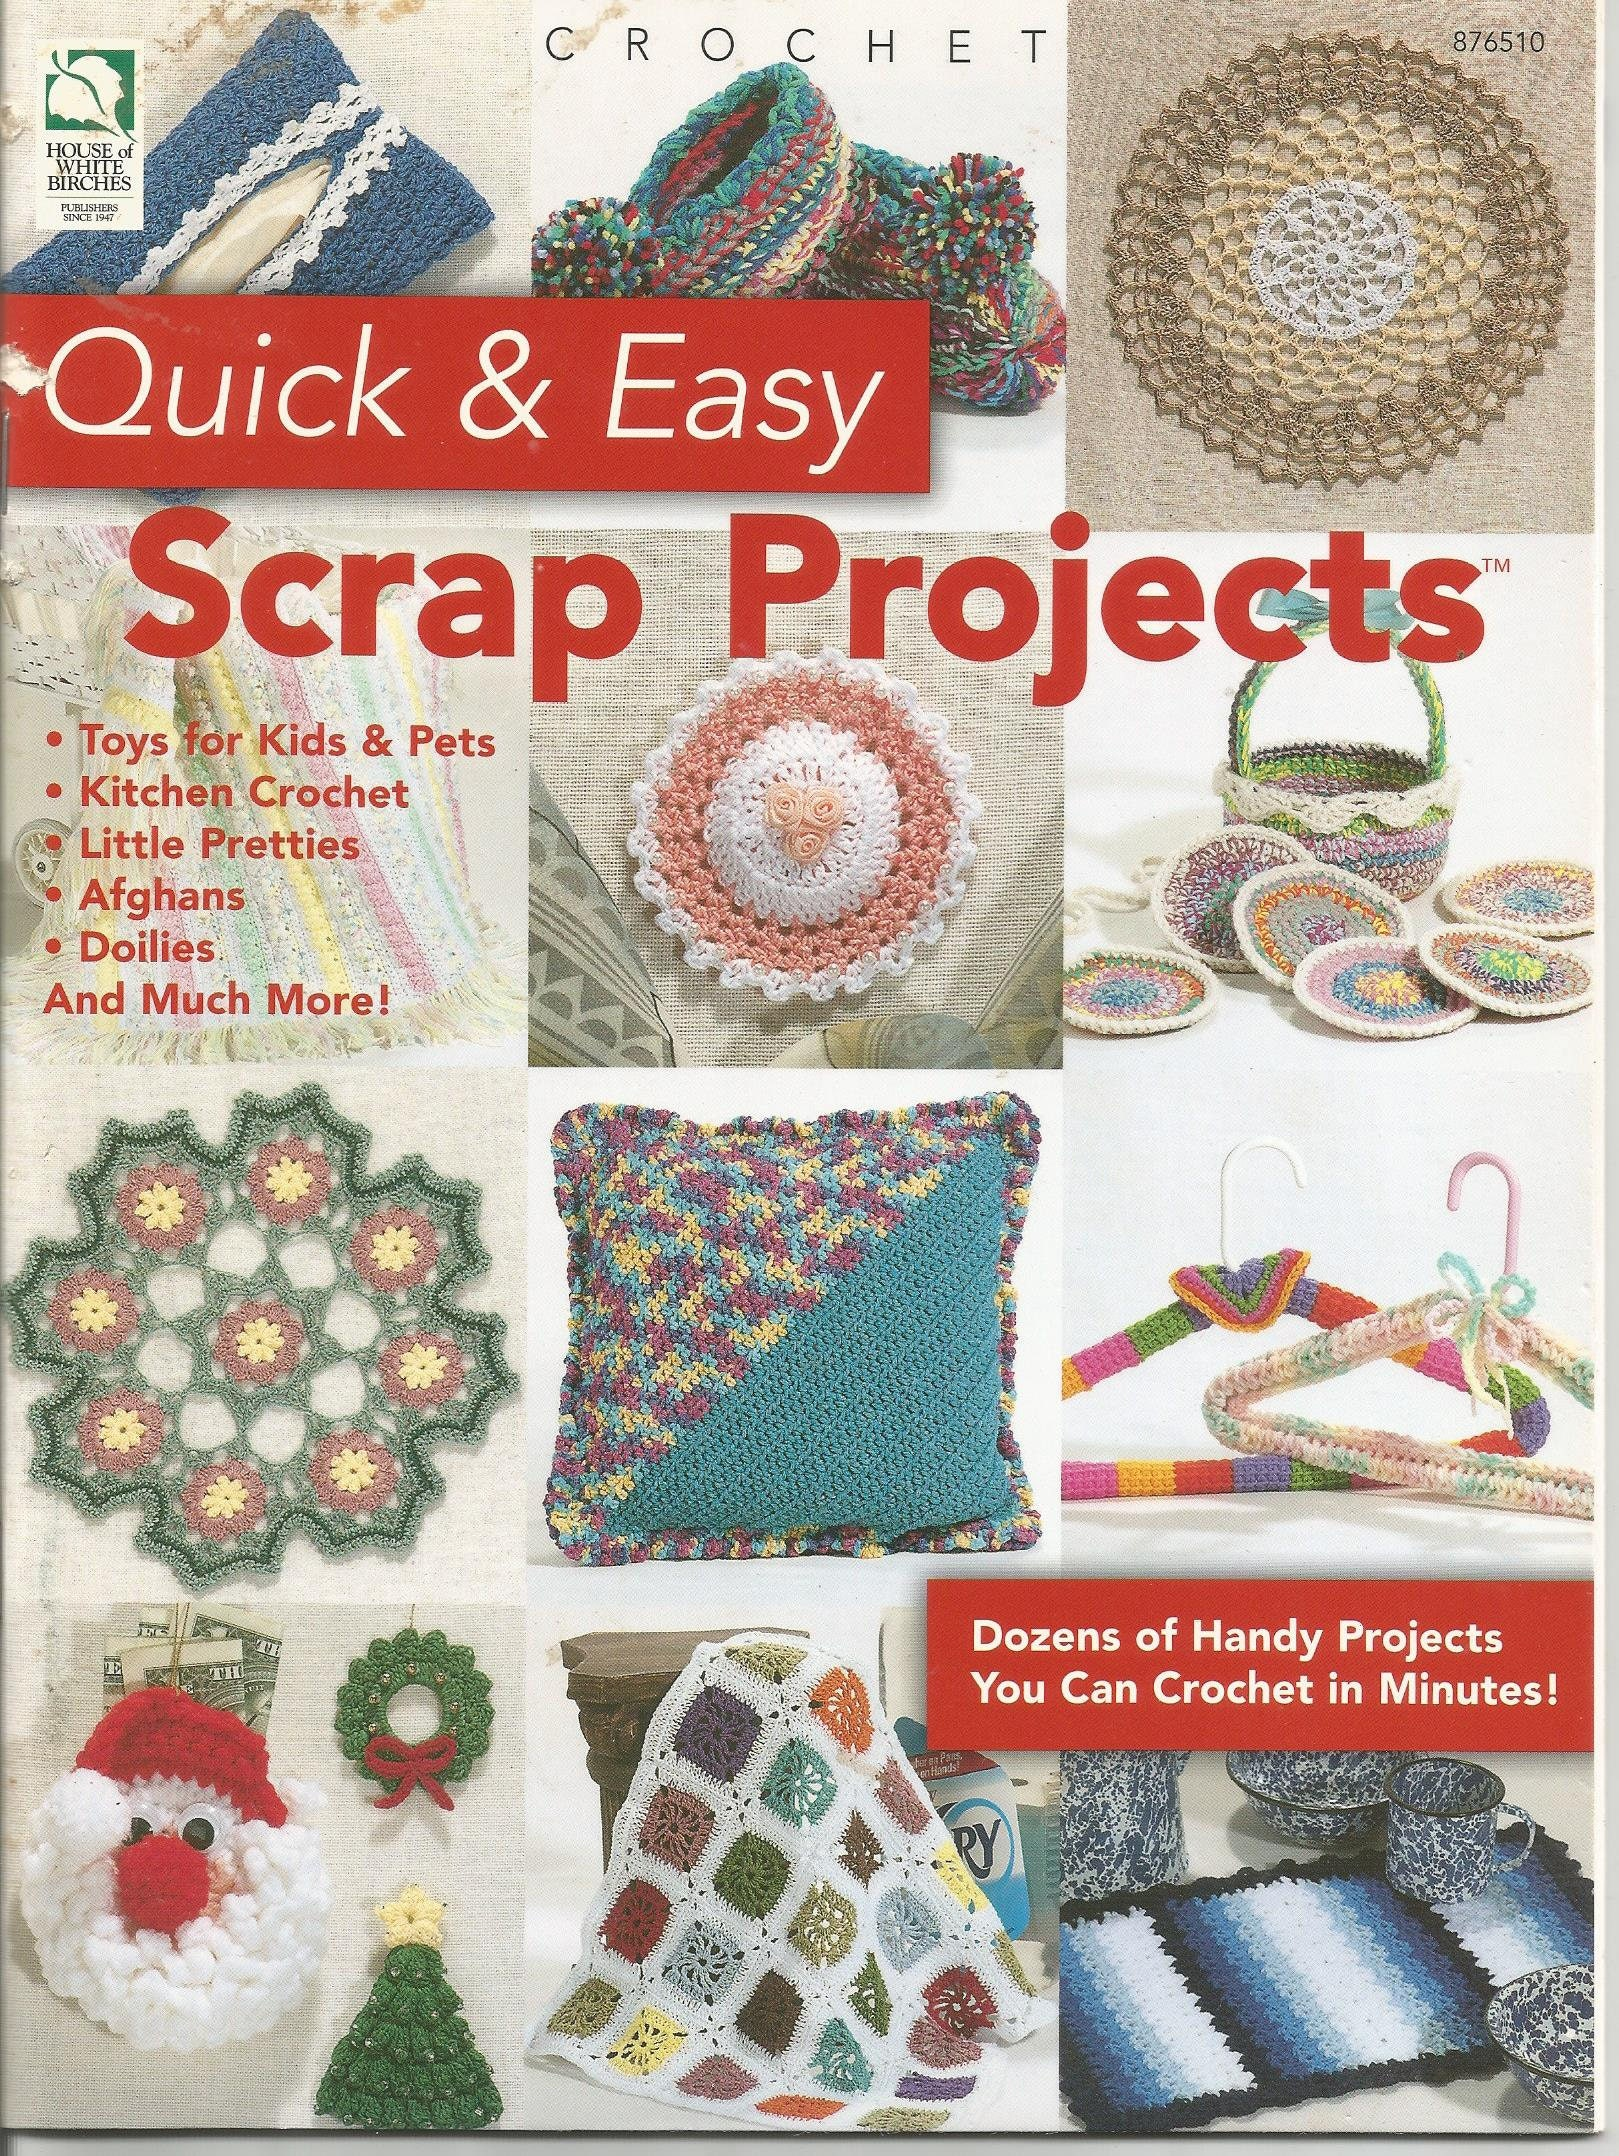 Scrap Projects Quick Easy Crochet Patterns Doll Patterns Etsy